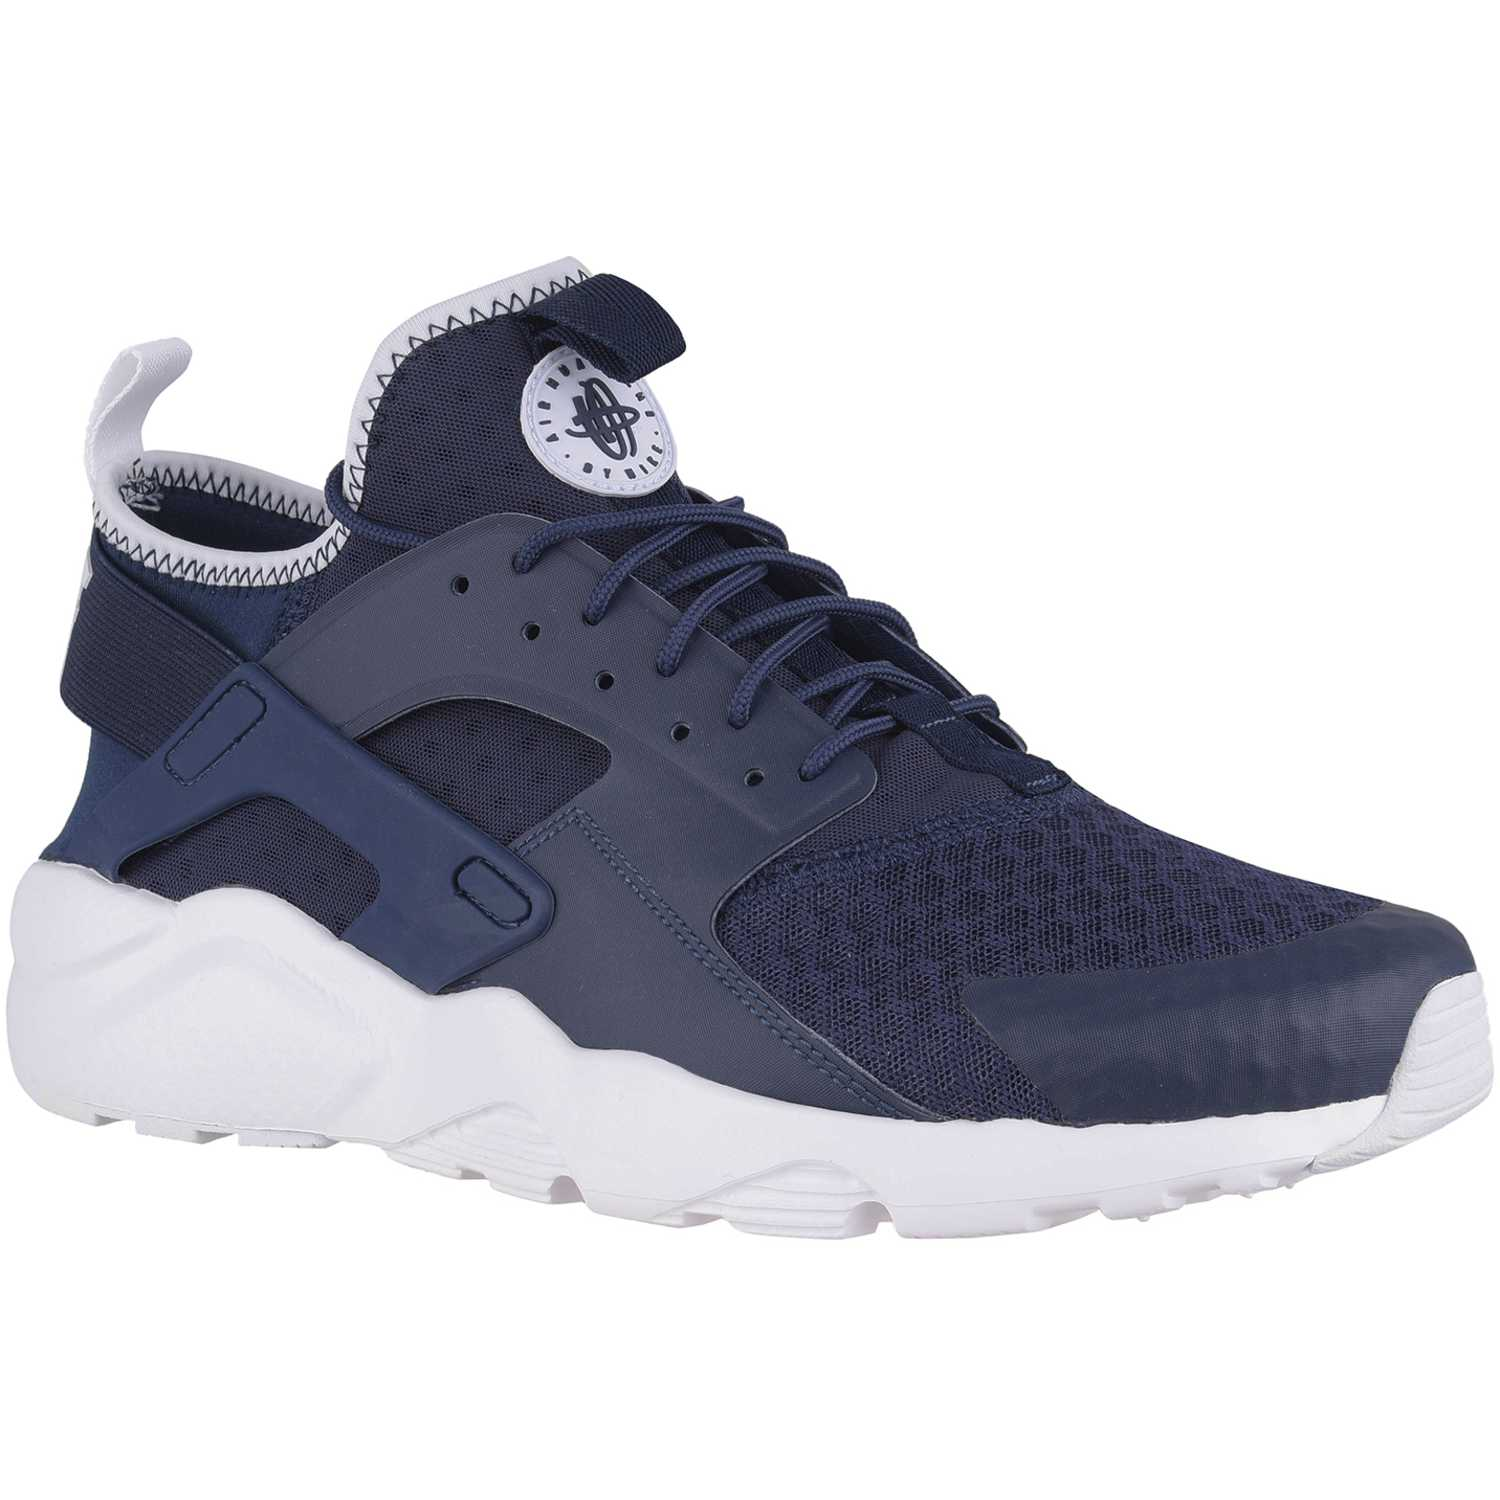 detailed look 020da f432e Zapatilla de Hombre Nike Azul   blanco air huarache run ultra